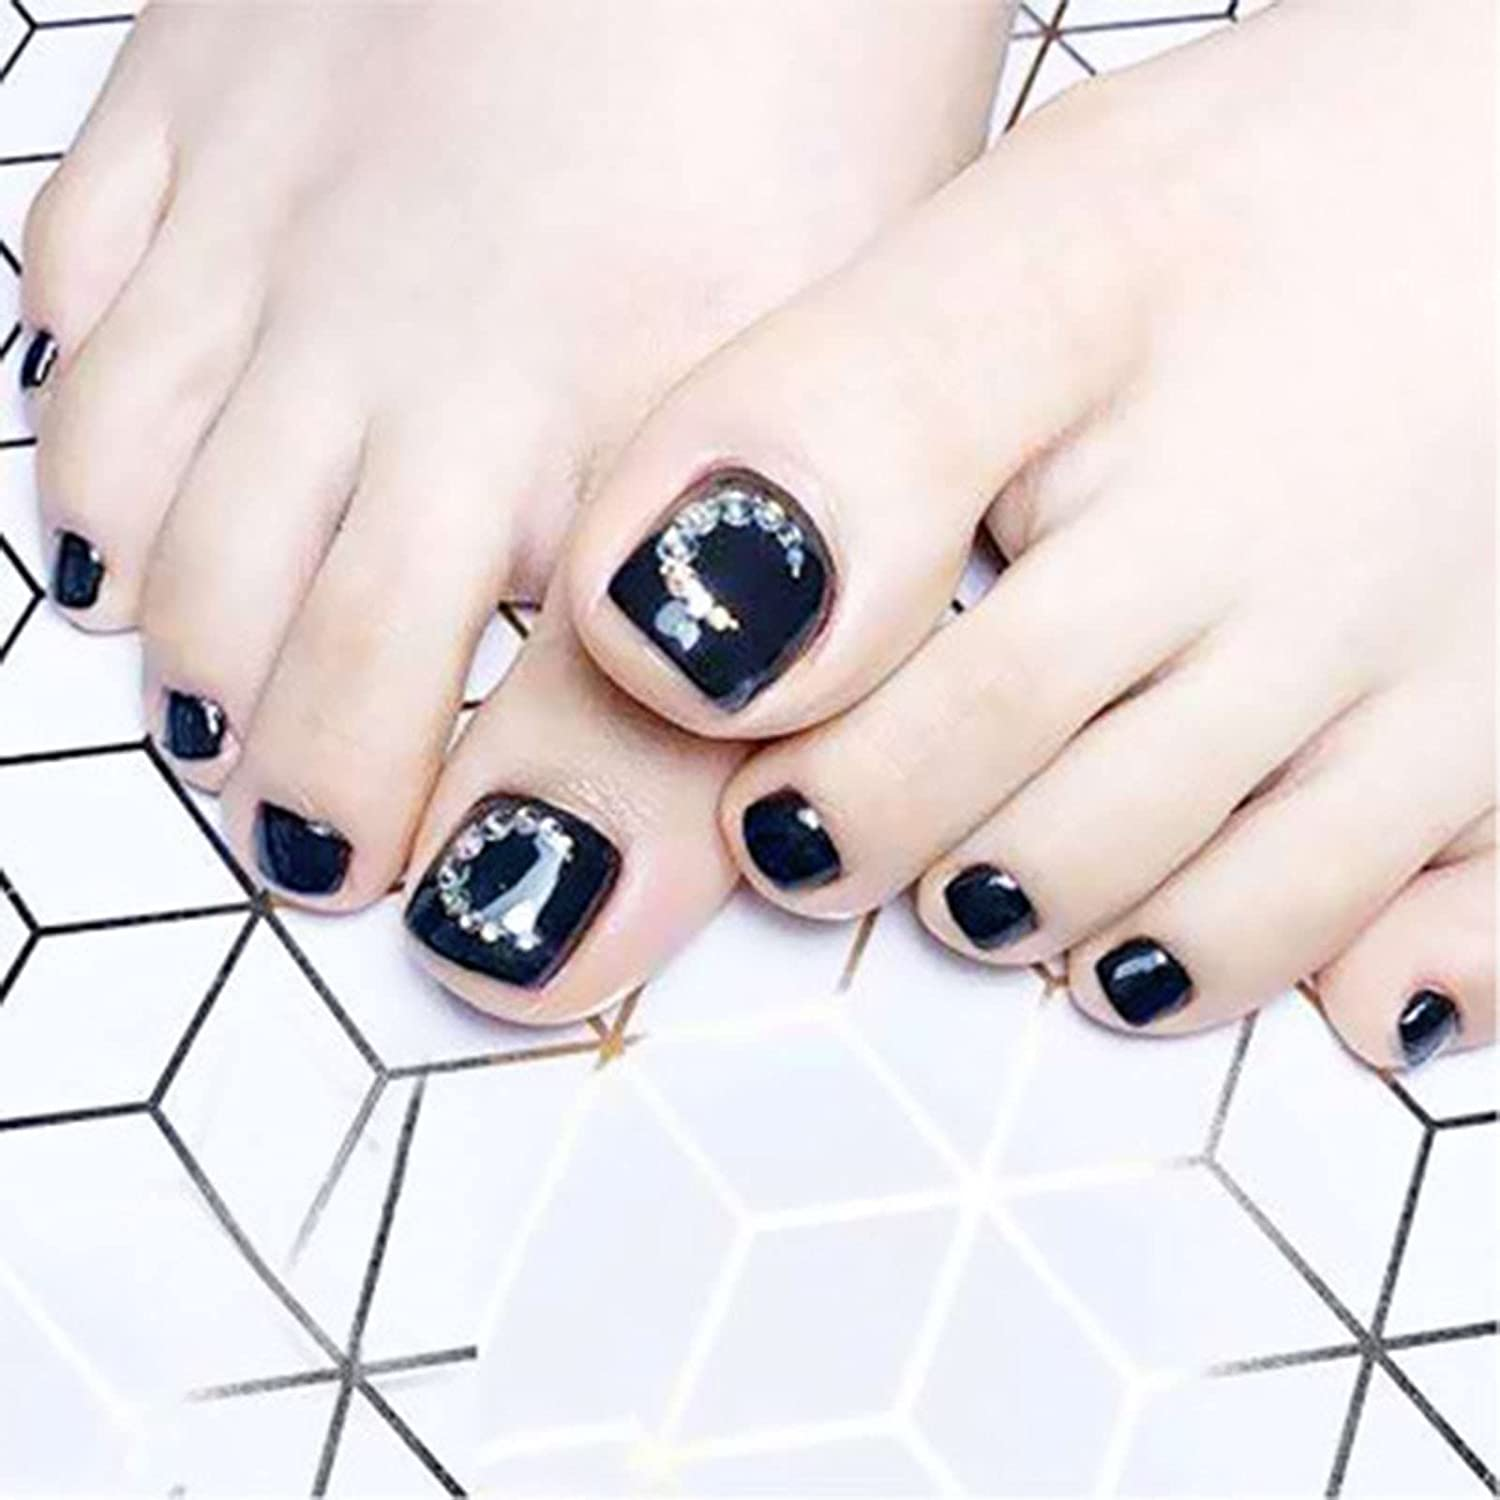 24 Pieces of Wearable Full Paste Nail Wom for Manicure Max 80% OFF Manufacturer OFFicial shop Tips